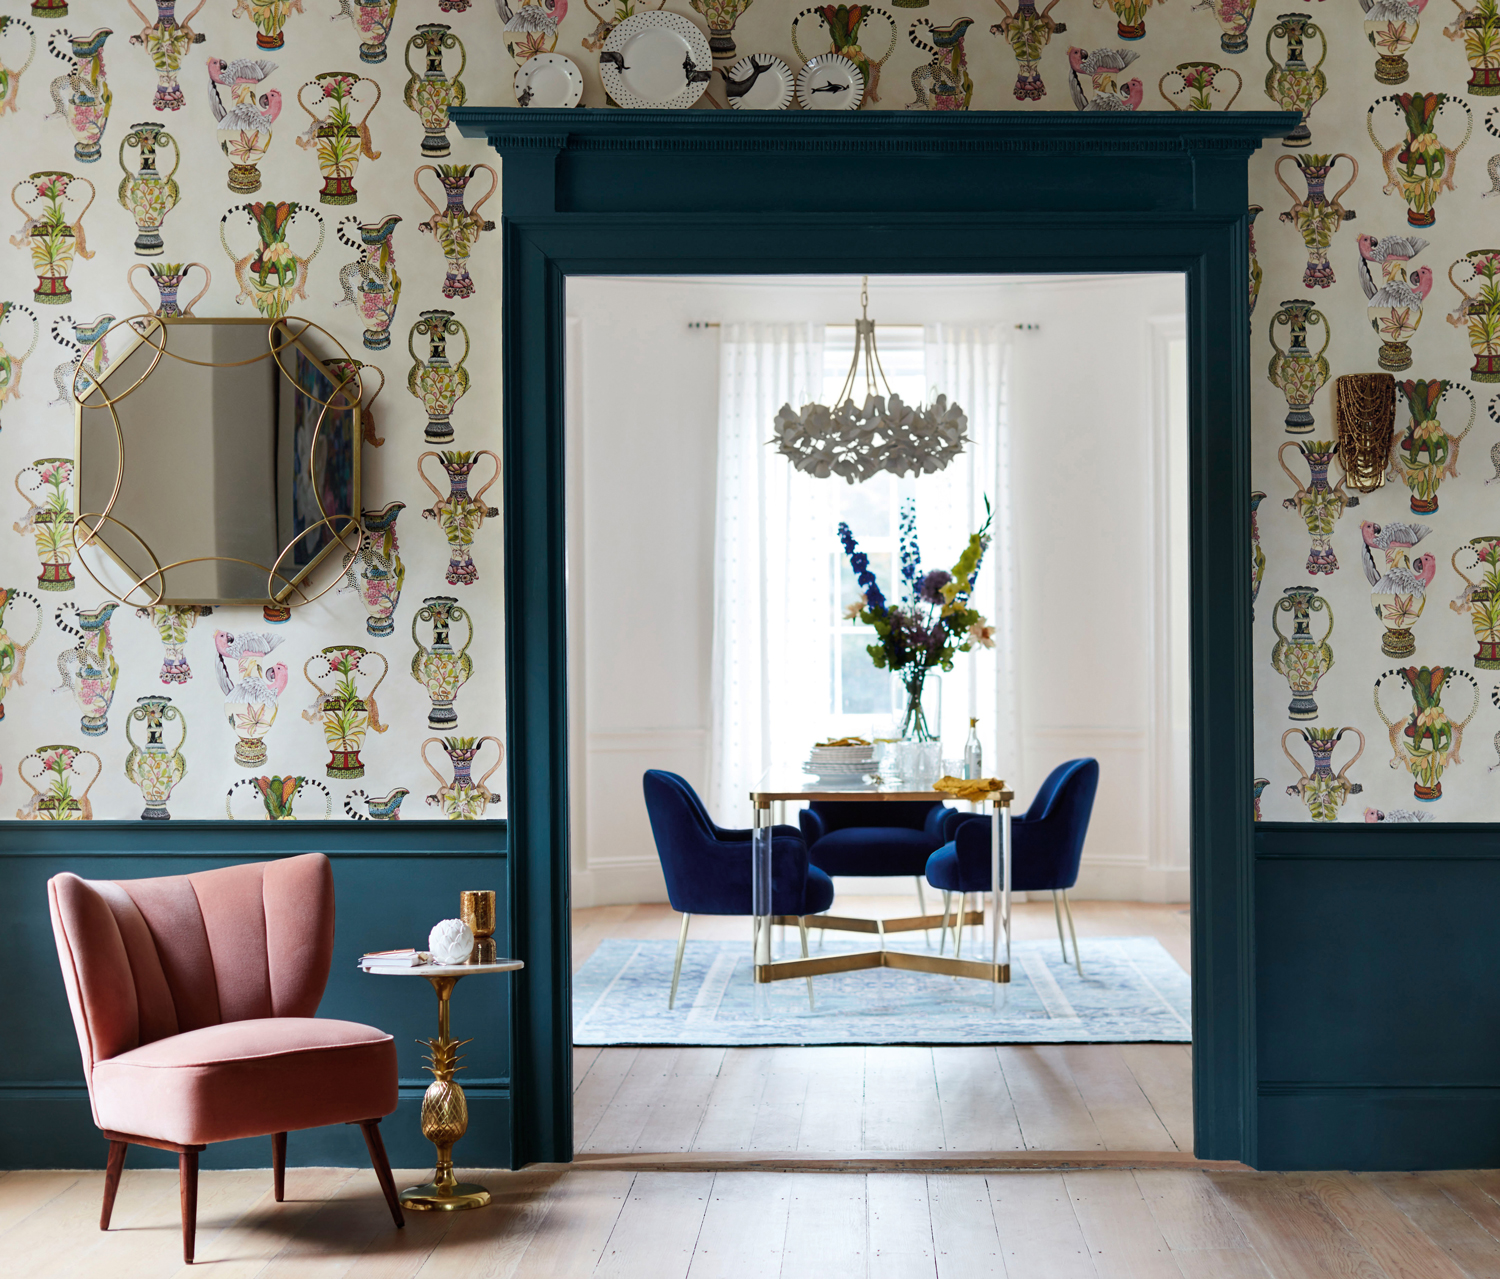 pink accent chair and floral wallpaper